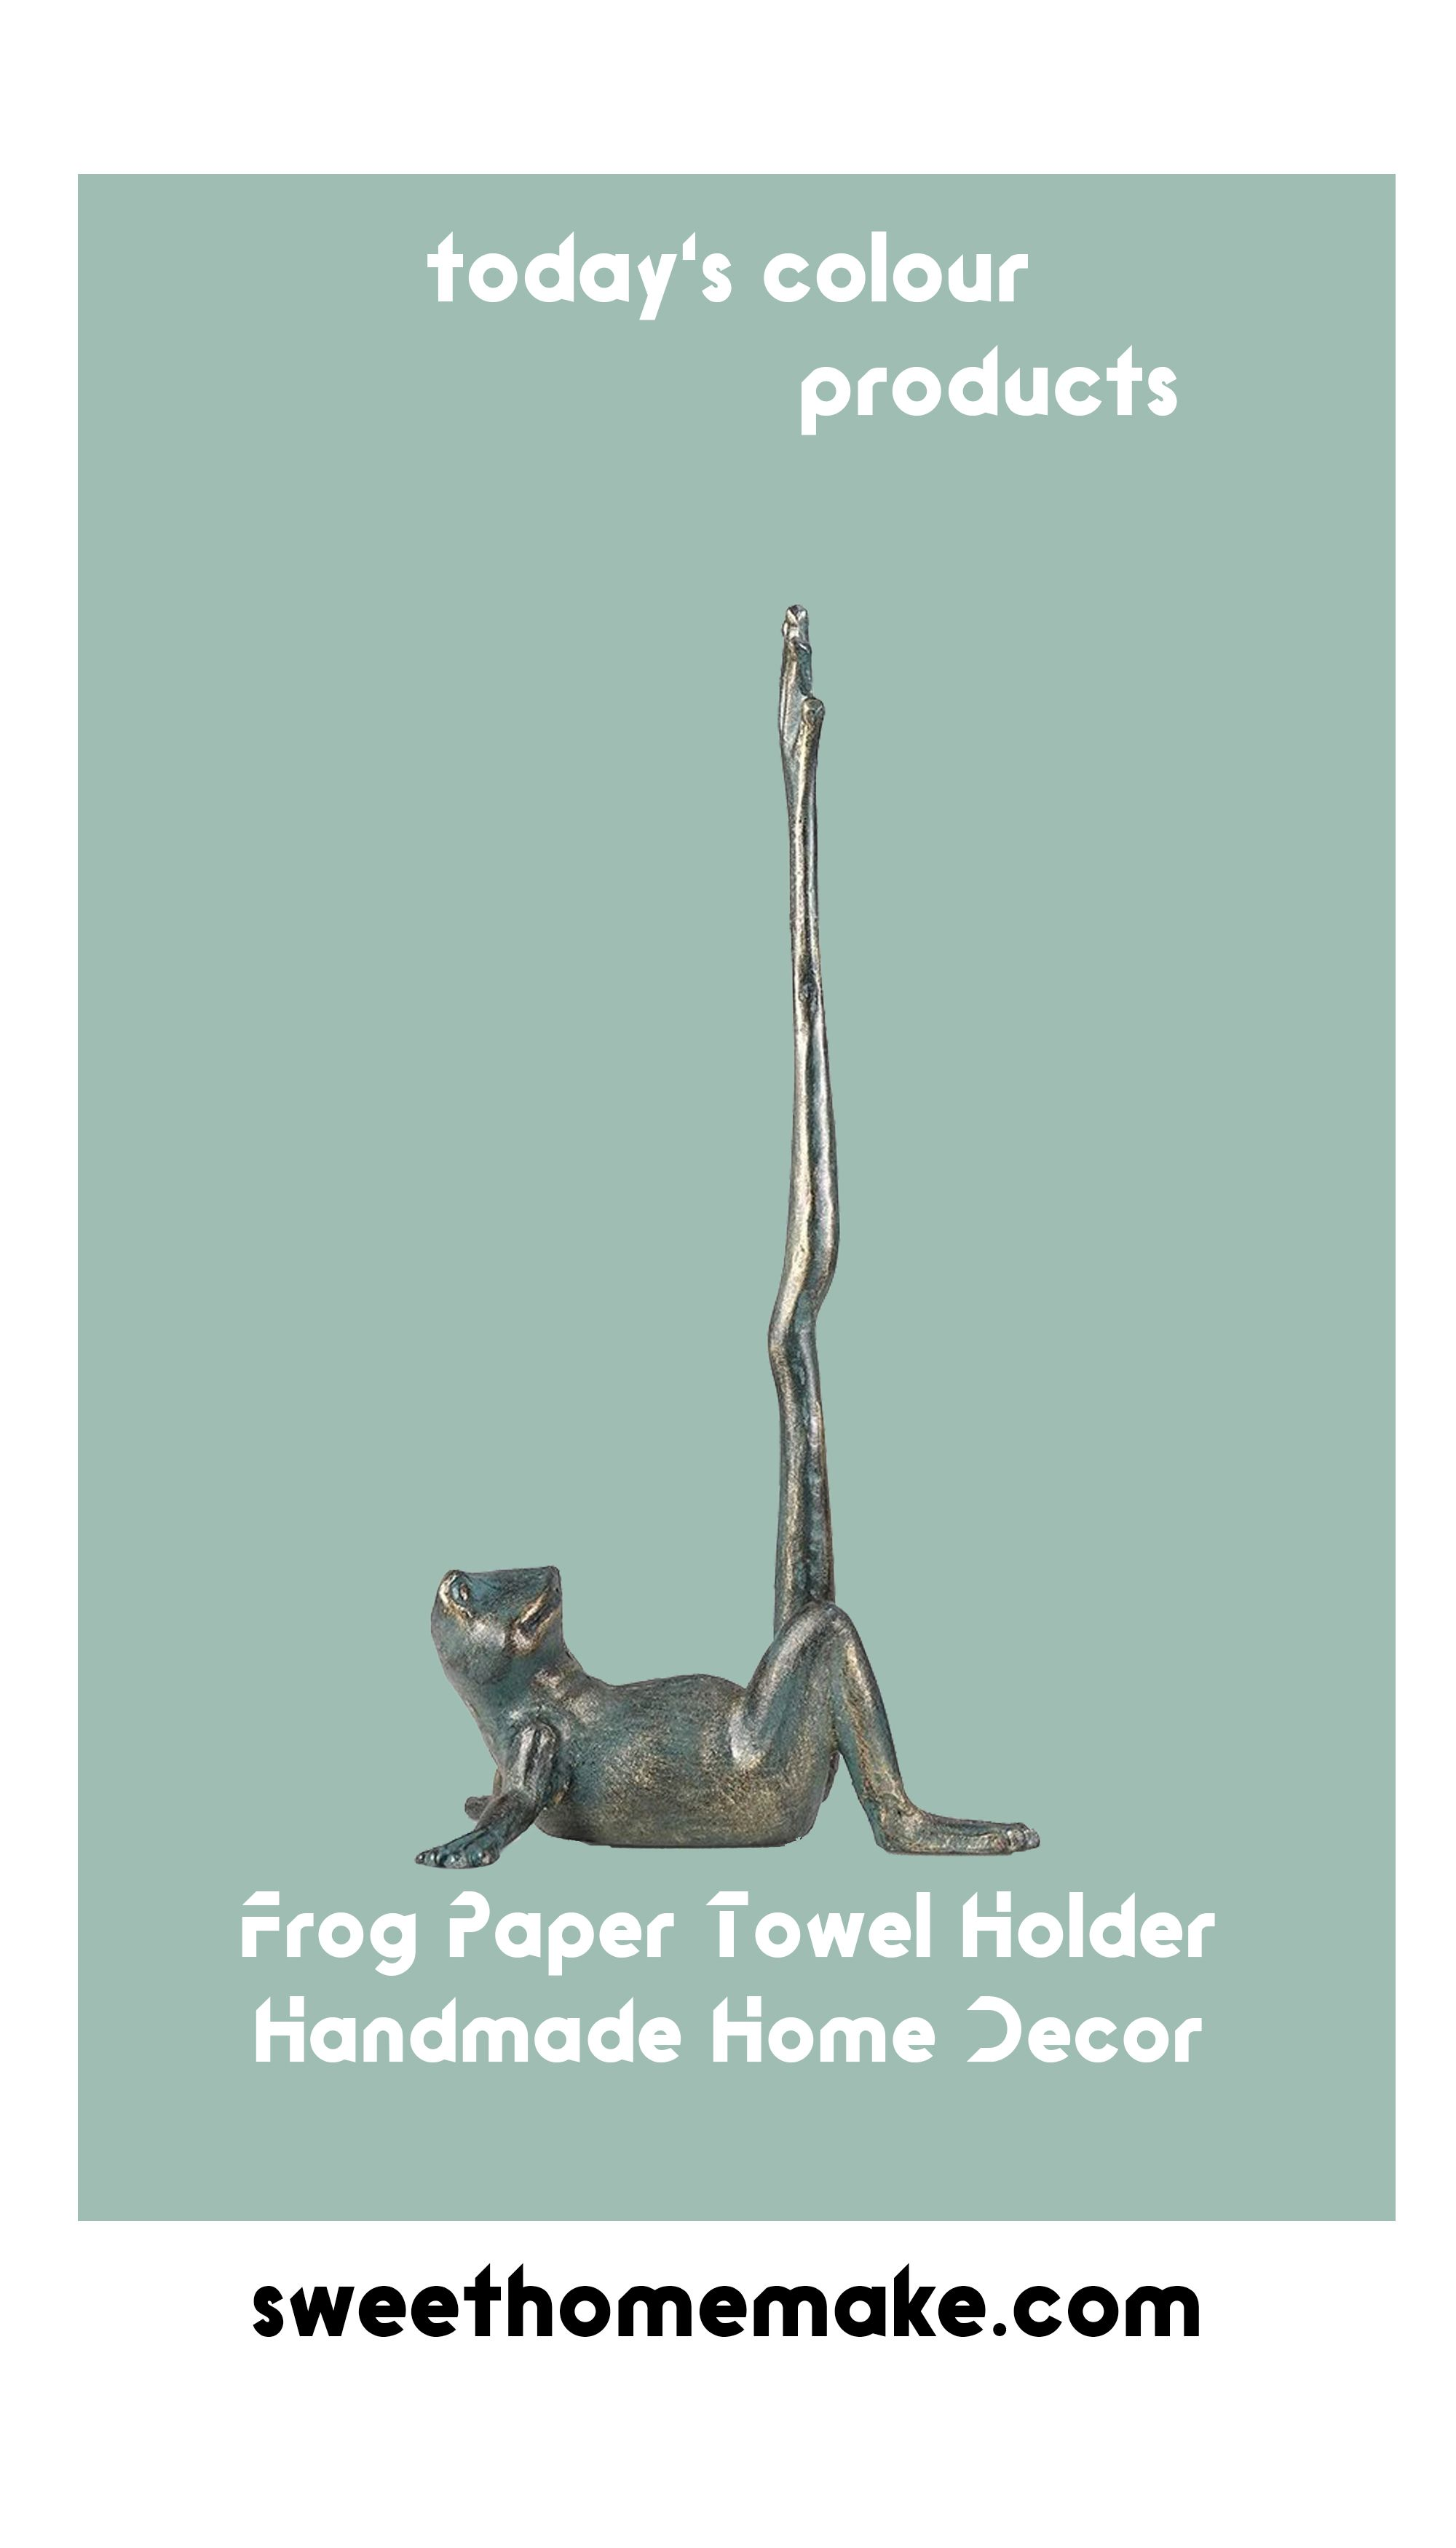 Frog Free Standing Paper Towel Holder For Kitchen Toilet Bathroom Desk Paper Towel Holder Towel Holder Frog Bathroom